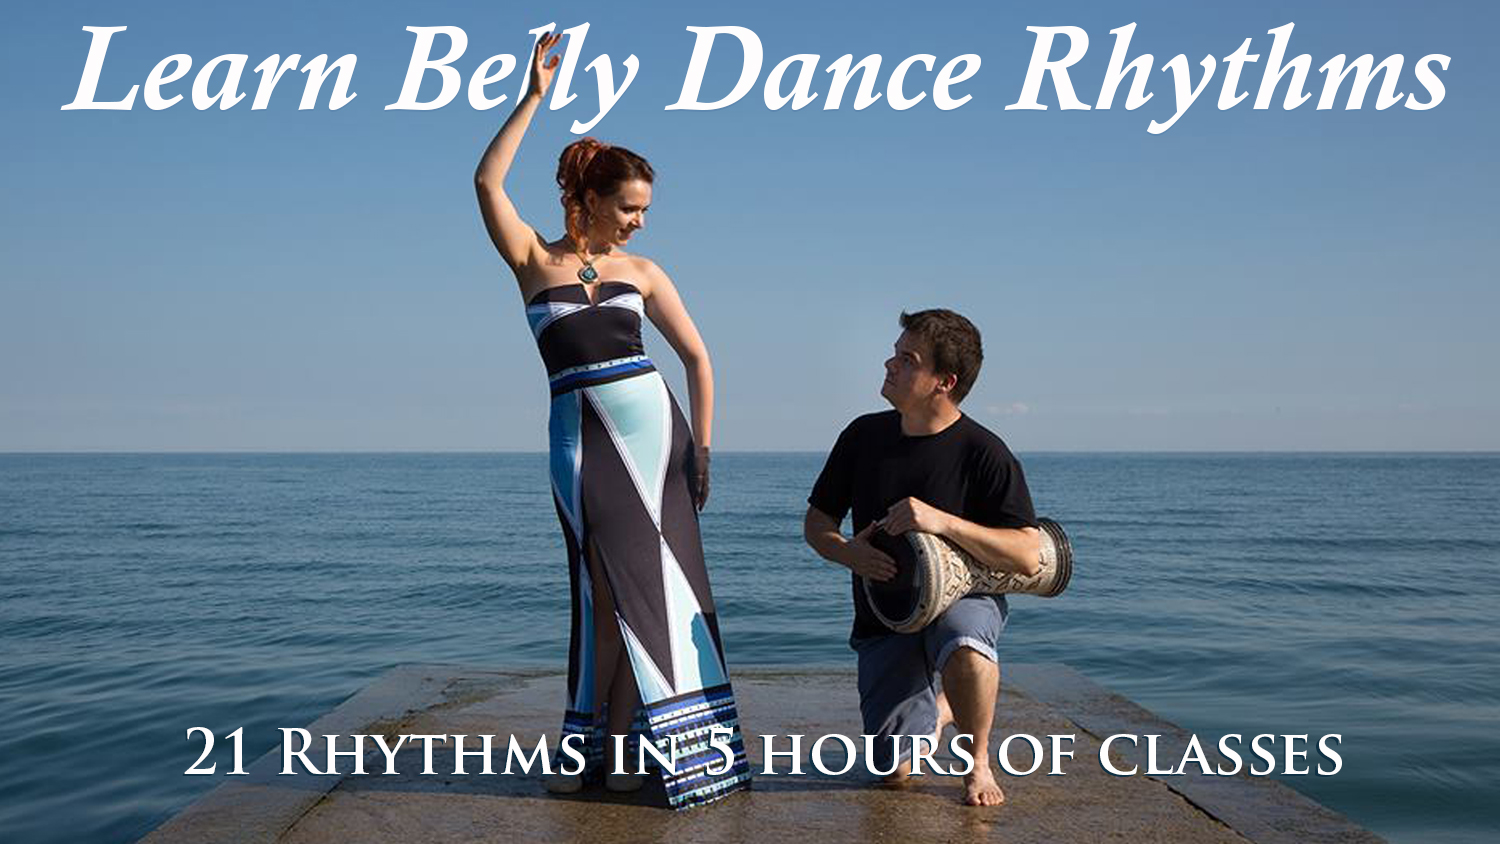 Learn Belly Dance Rhythms Online